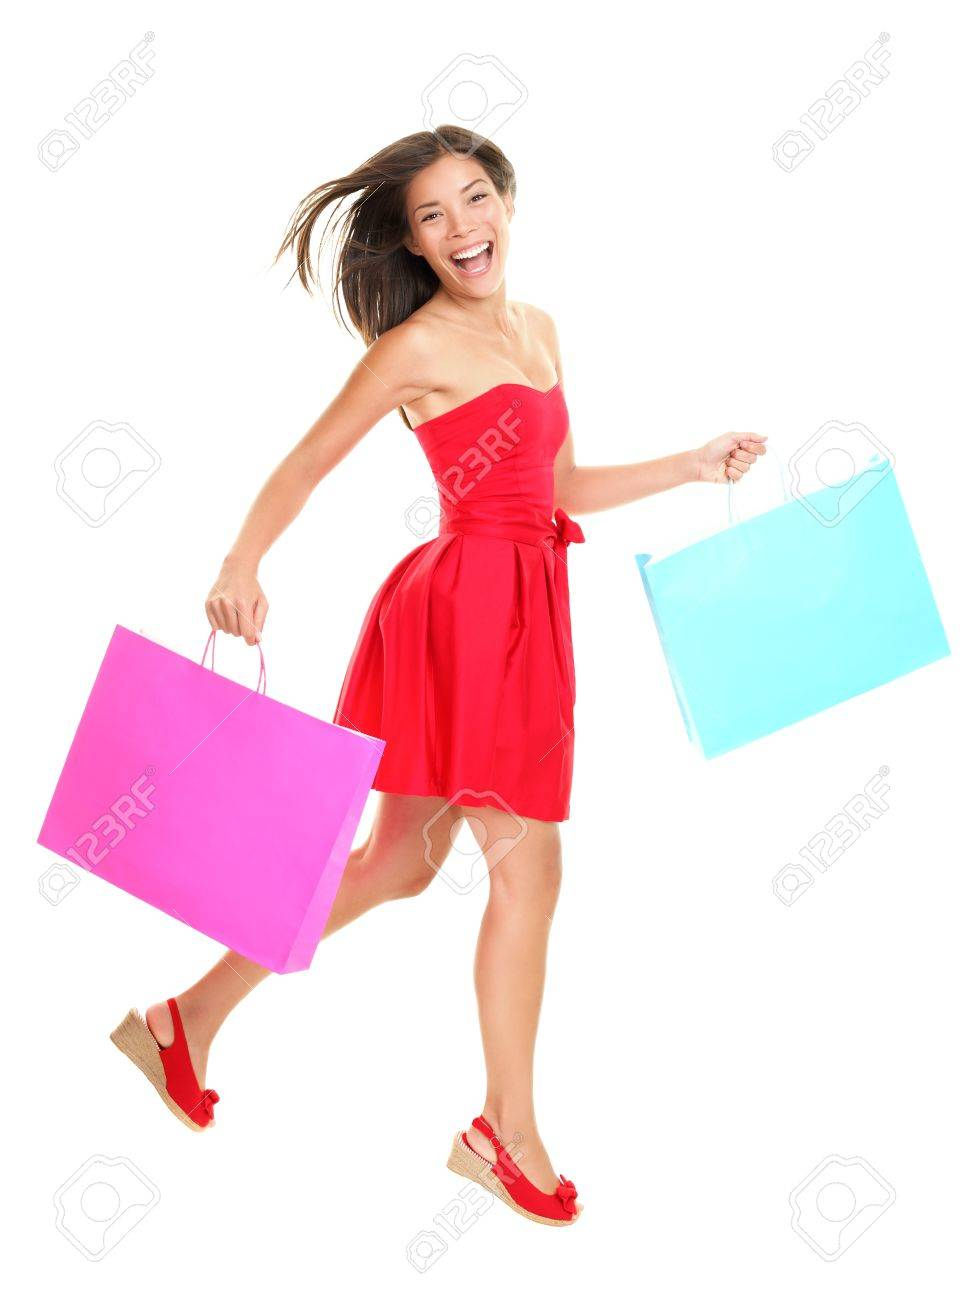 Shopper - woman shopping holding shopping bags in red summer dress. Young asian woman walking cheerful and smiling isolated in full body on white background. Mixed race Asian / Caucasian female model. Stock Photo - 9607536